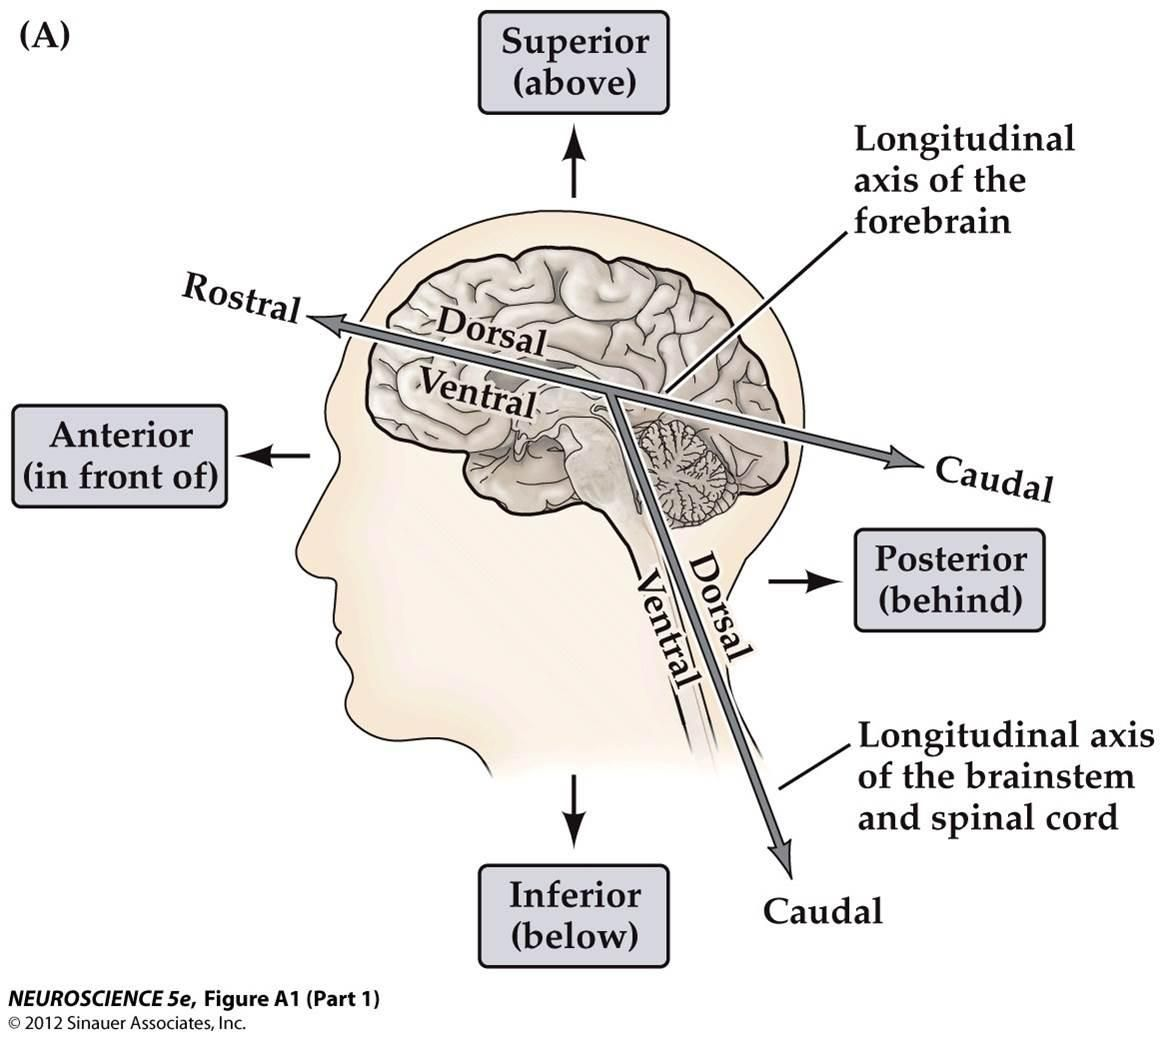 Anatomical Planes And Directions Of Neuroanatomy Above